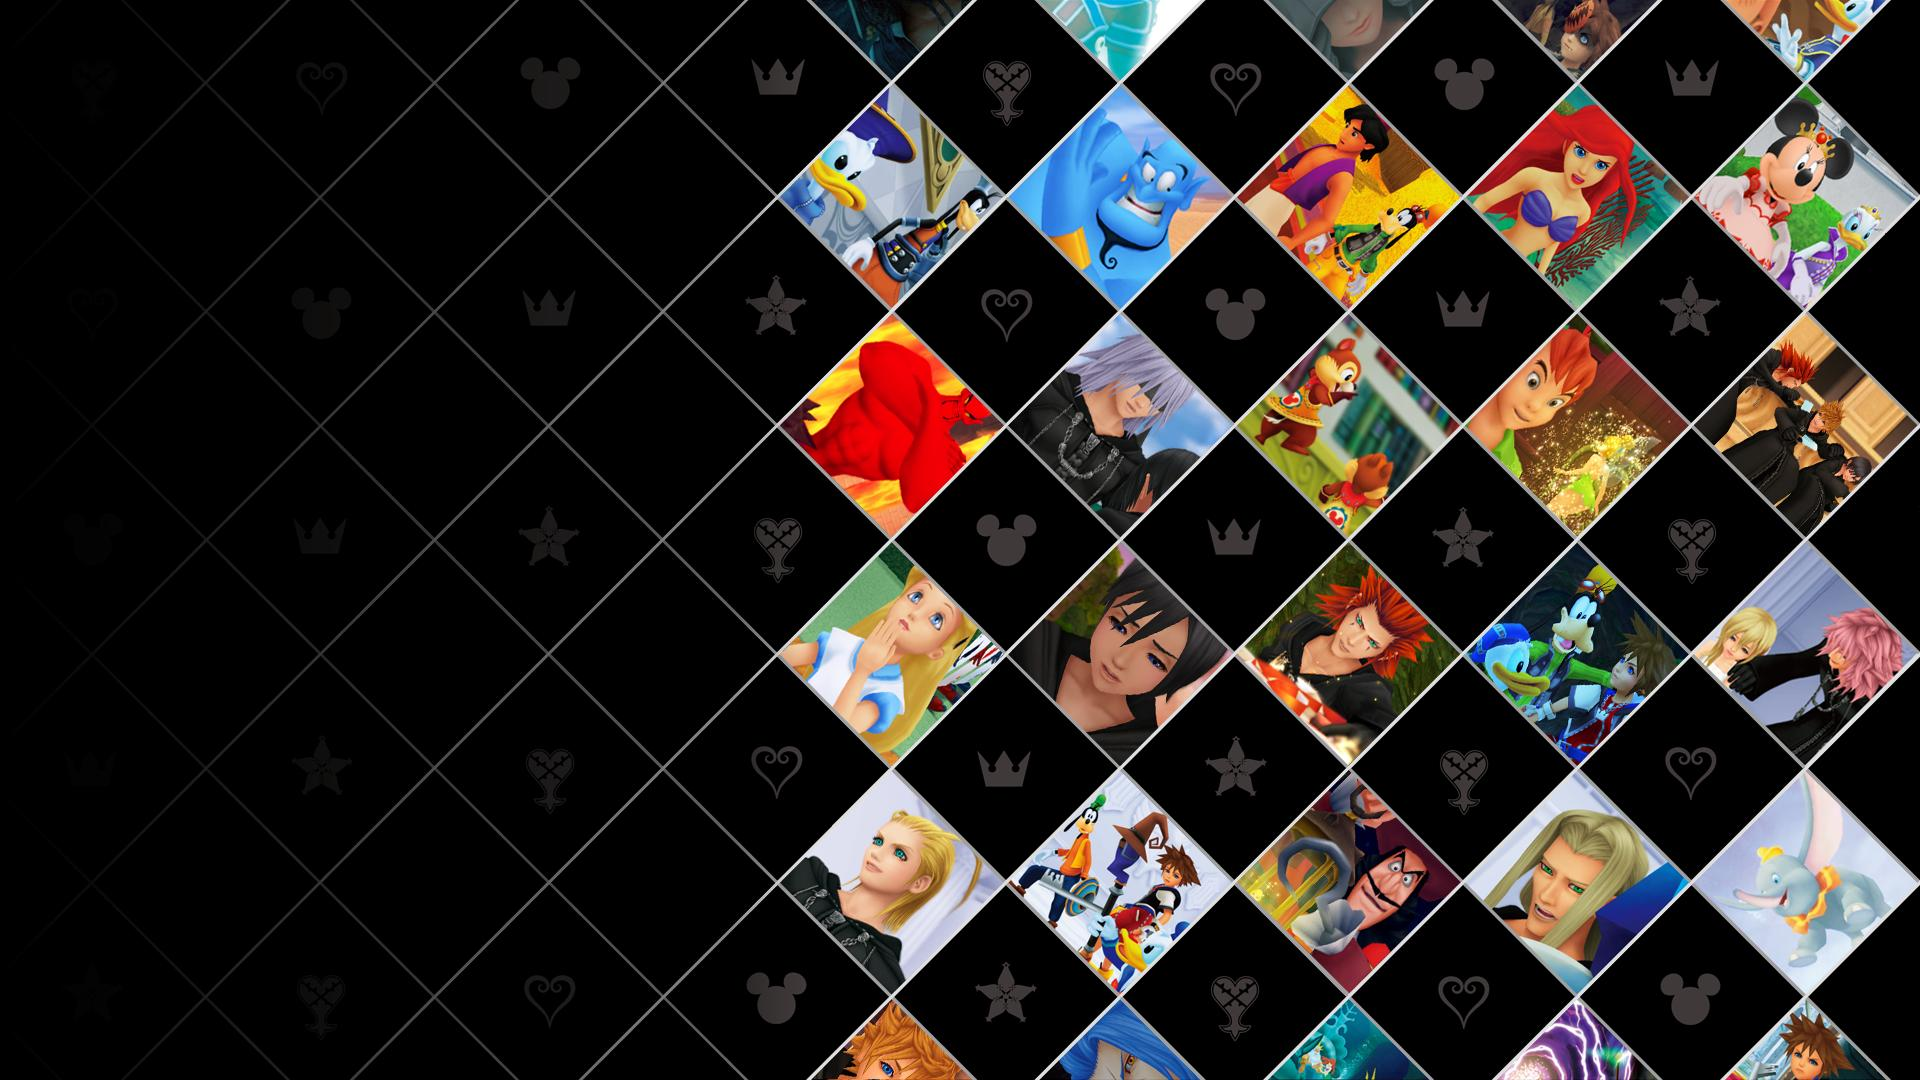 Kingdom Hearts 15 Ps3 Theme wallpaper   928409 1920x1080